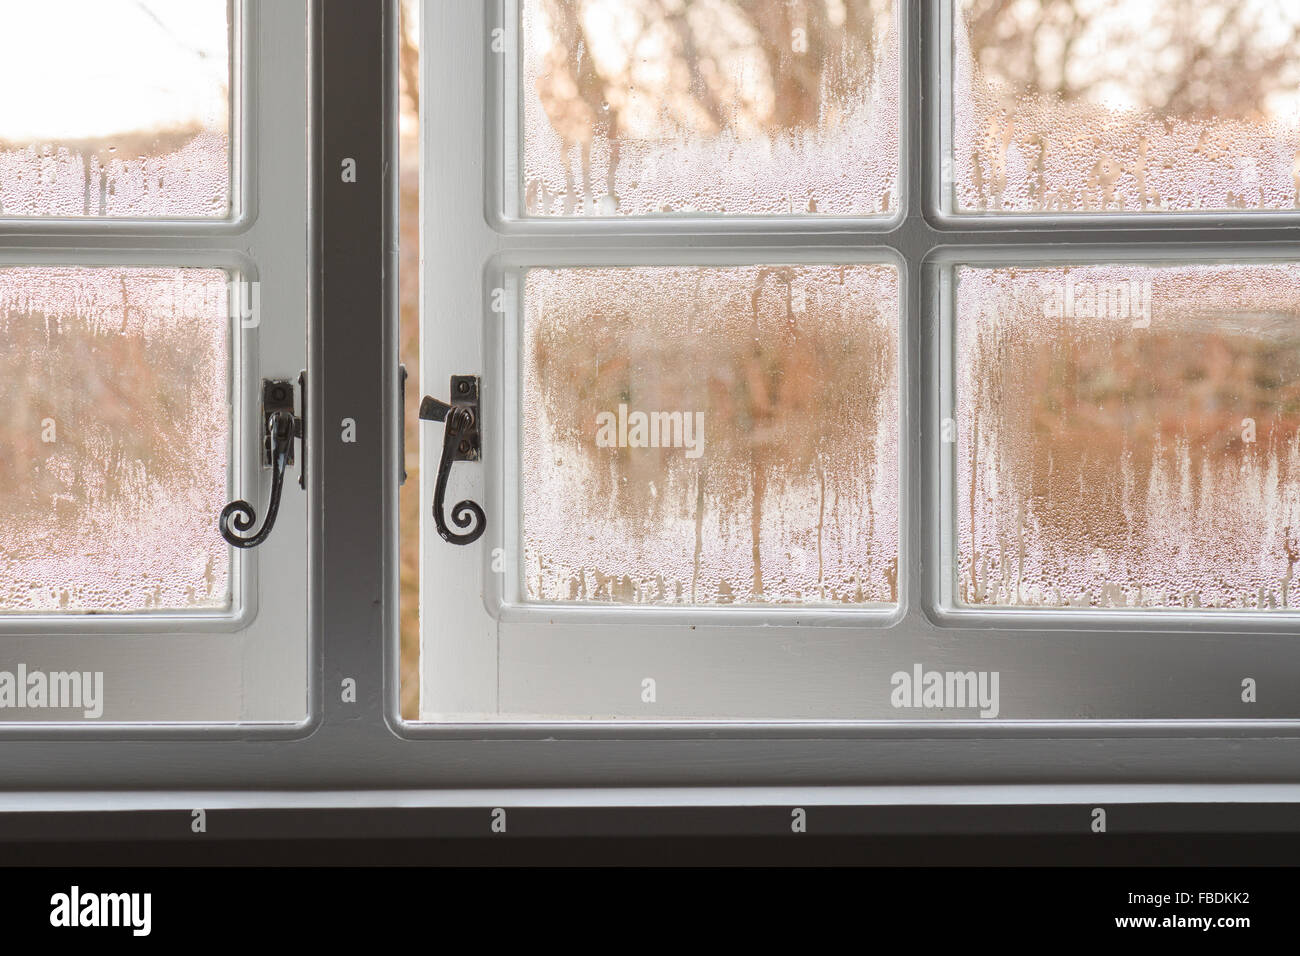 condensation running down traditional single glazed wooden windows in winter  which have been opened - Scotland, - Stock Image